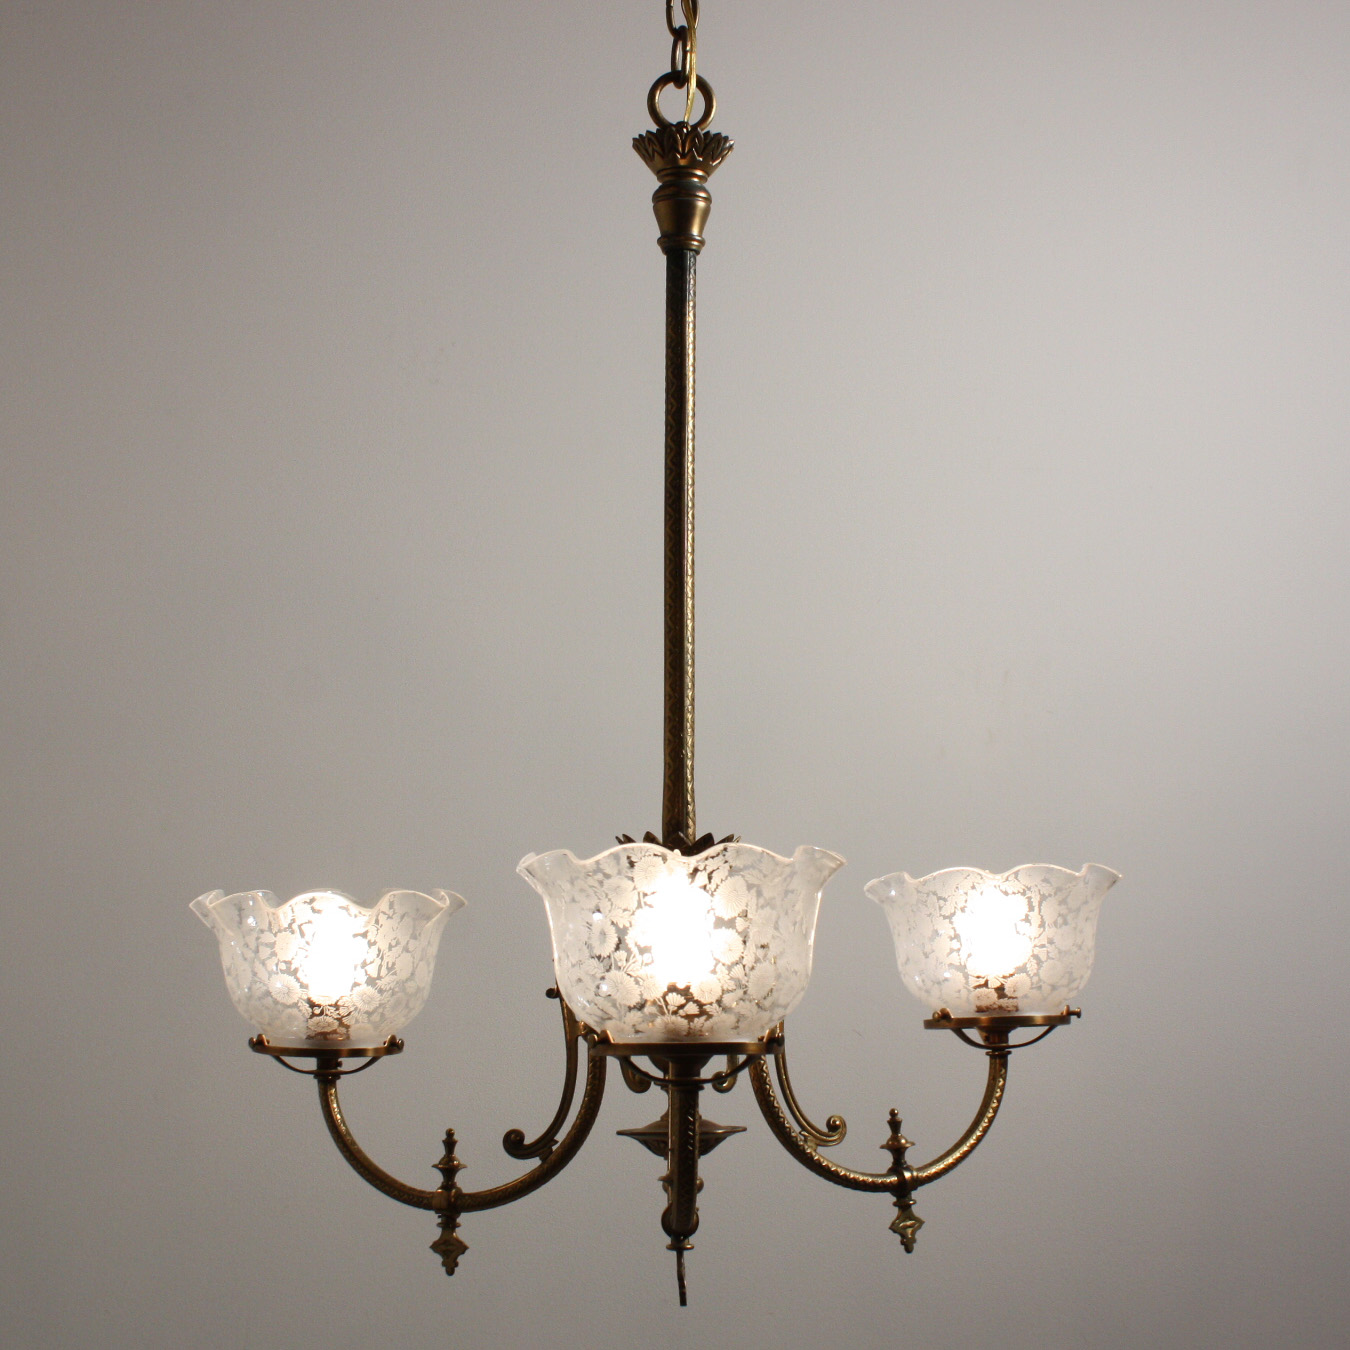 spectacular antique aesthetic movement gas chandelier with original glass shades c 1880. Black Bedroom Furniture Sets. Home Design Ideas